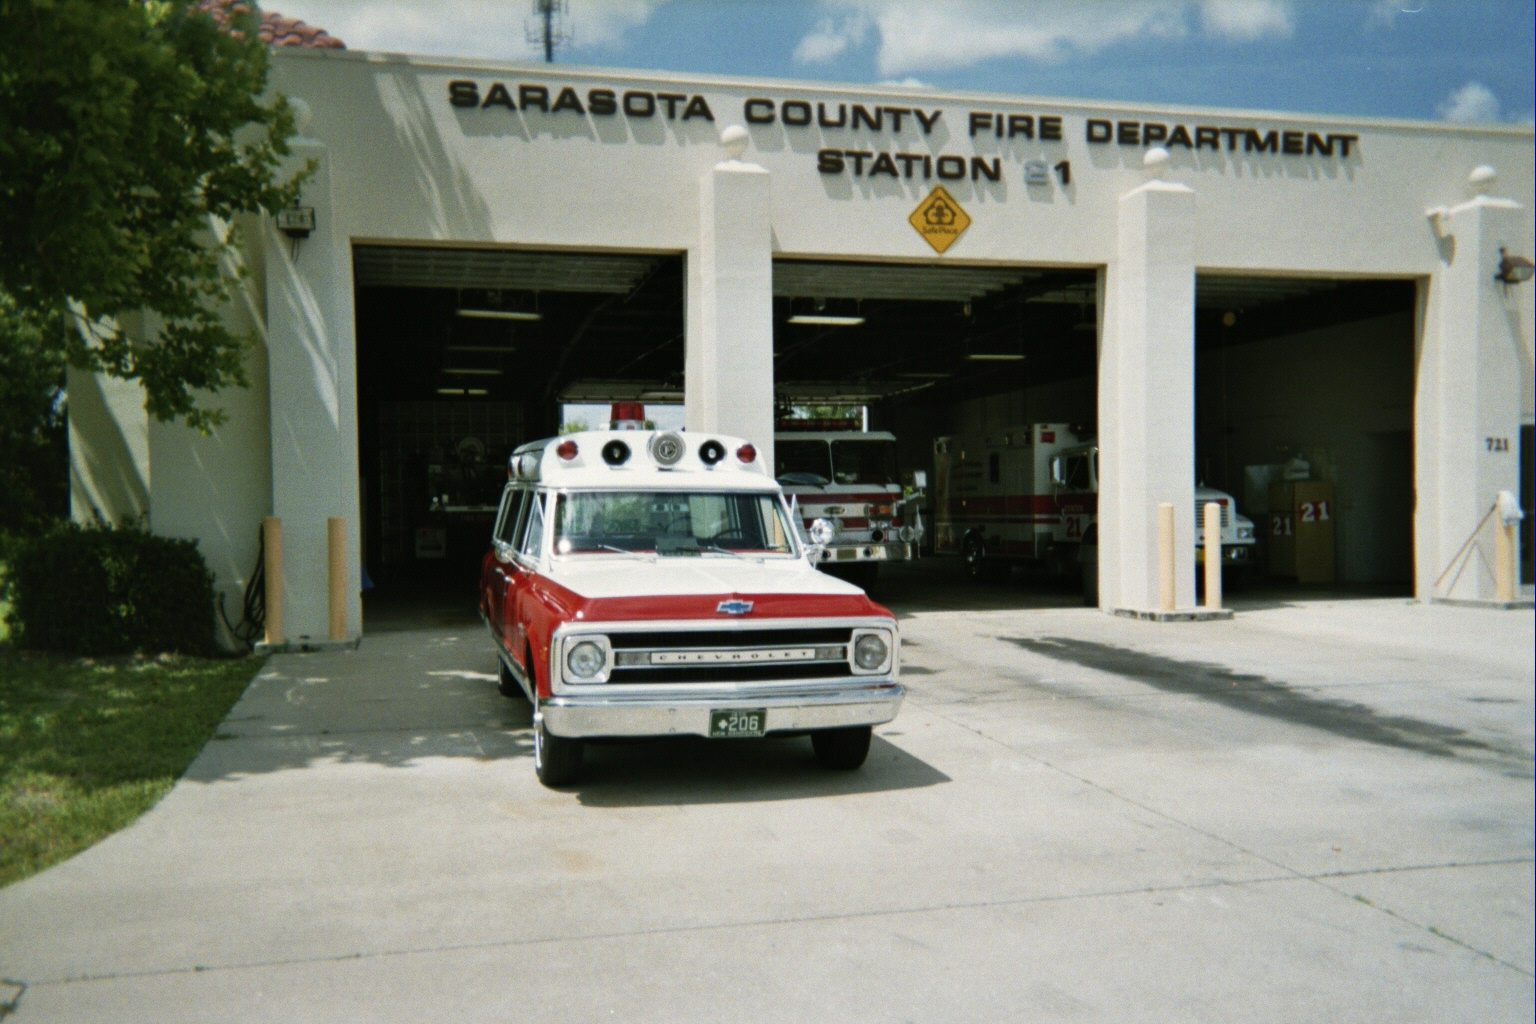 Station 31 is now Station 21